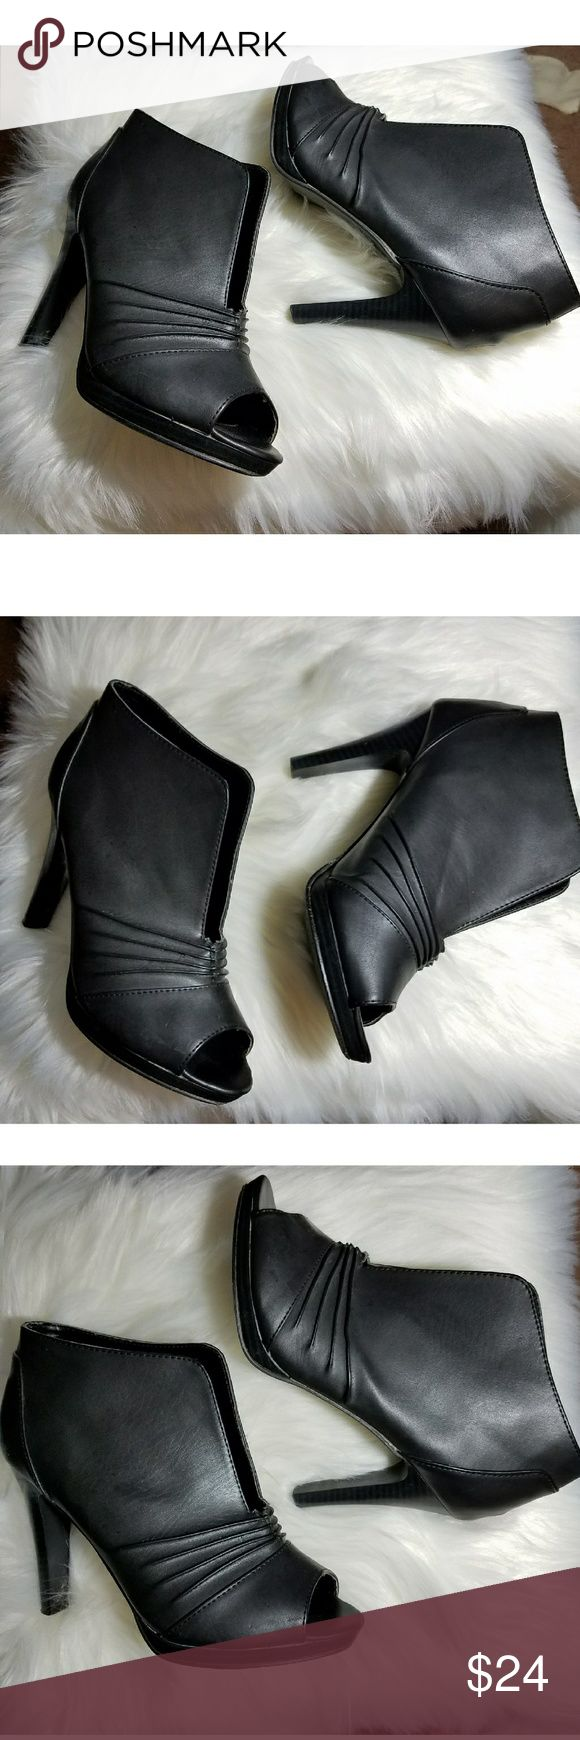 "Maurices Open Toe Boots Maurices Open Toe Boots Size 7.5 4"" Heel Slip On Like New Condition Maurices Shoes Heeled Boots"